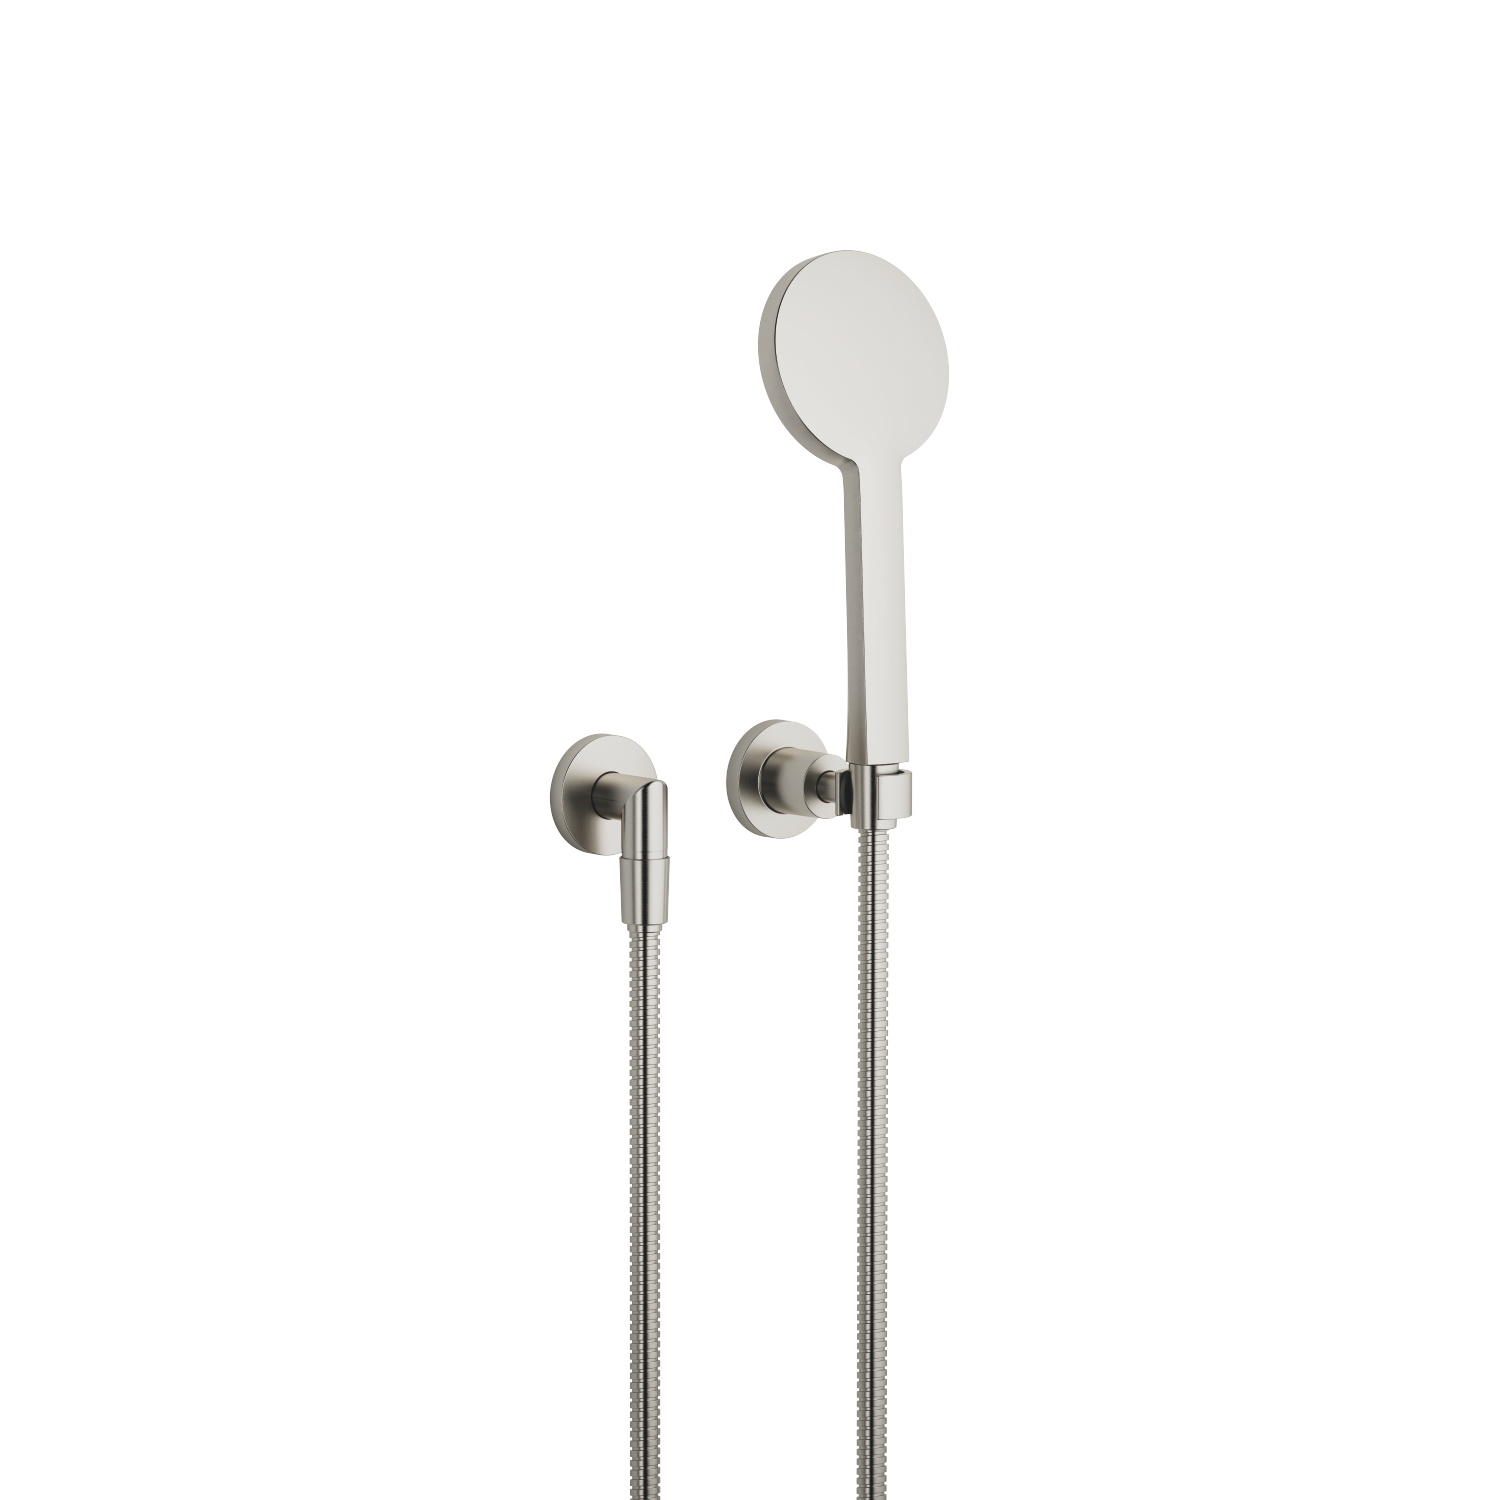 Hand shower set with individual flanges - platinum matte